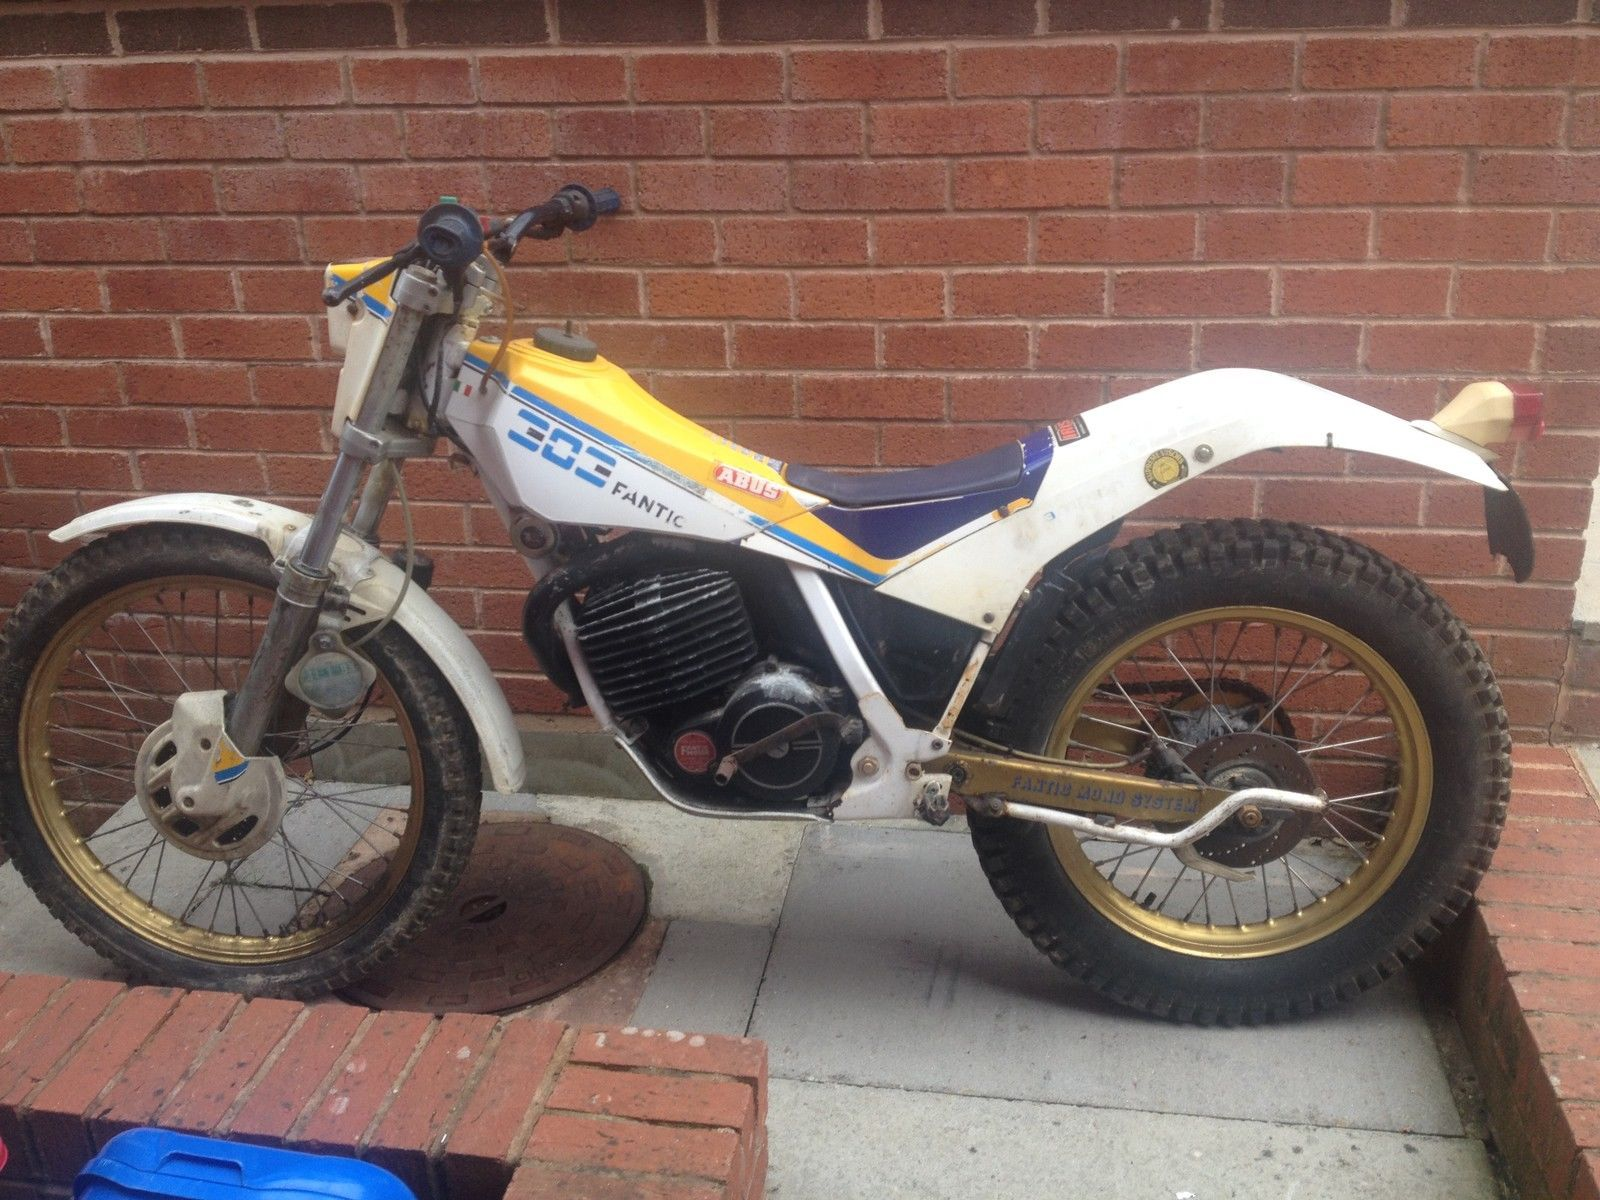 fantic 303 trials bike air cooled mono | eBay I love this